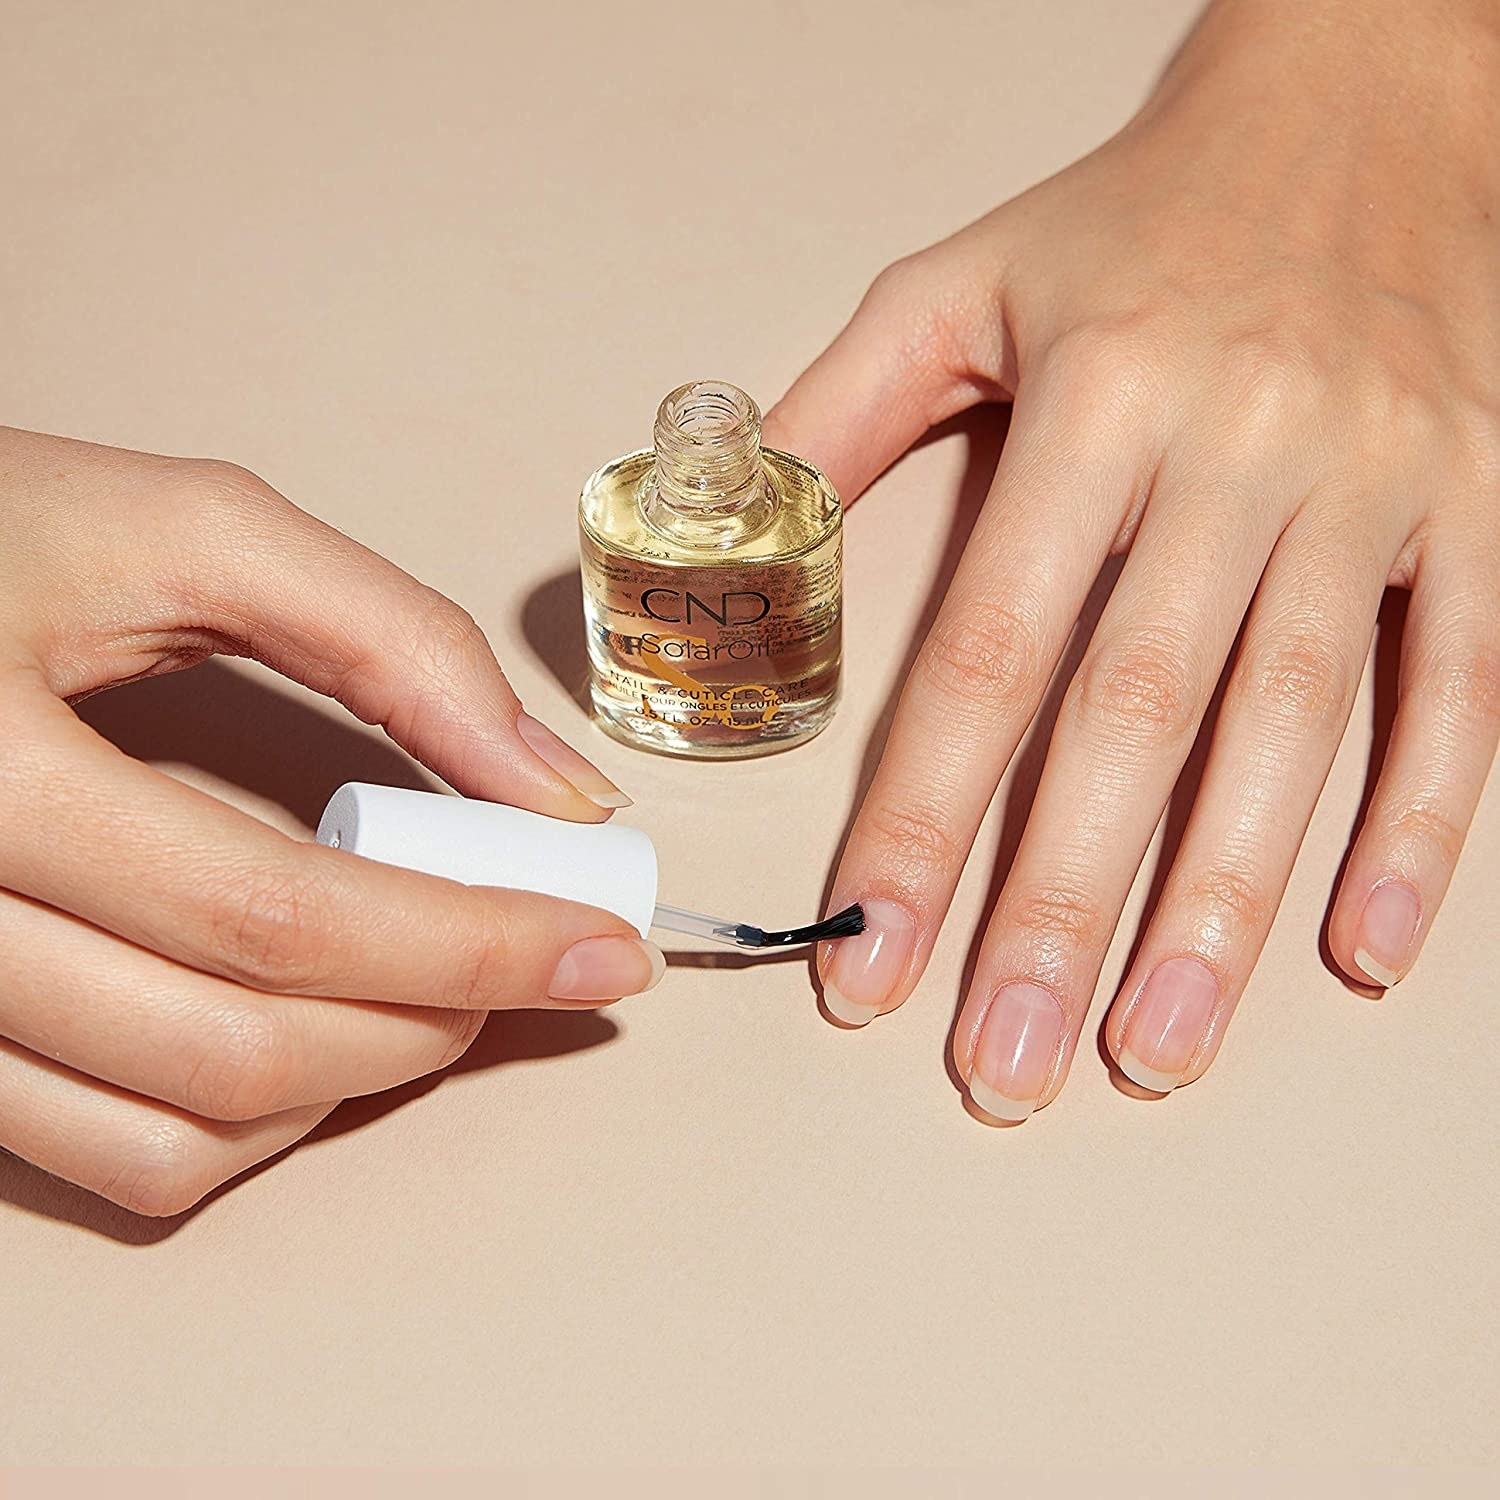 A person applying the cuticle oil to their nails